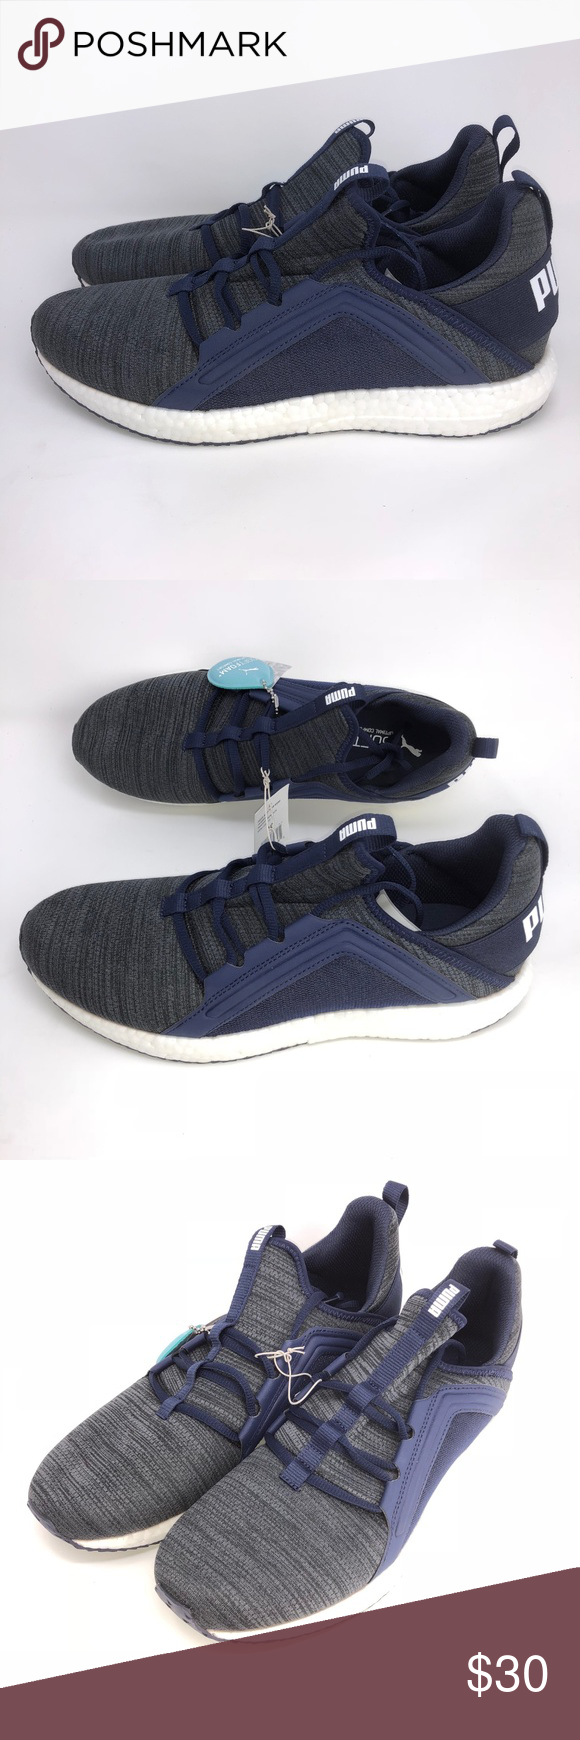 5868d3755406 Puma Mega Nrgy Heather Knit Men's Running Shoes NEW Puma Mega Nrgy Heather  Knit Men's Running Shoes Blue/Gray Size 10 Combination knit and synthetic  upper ...